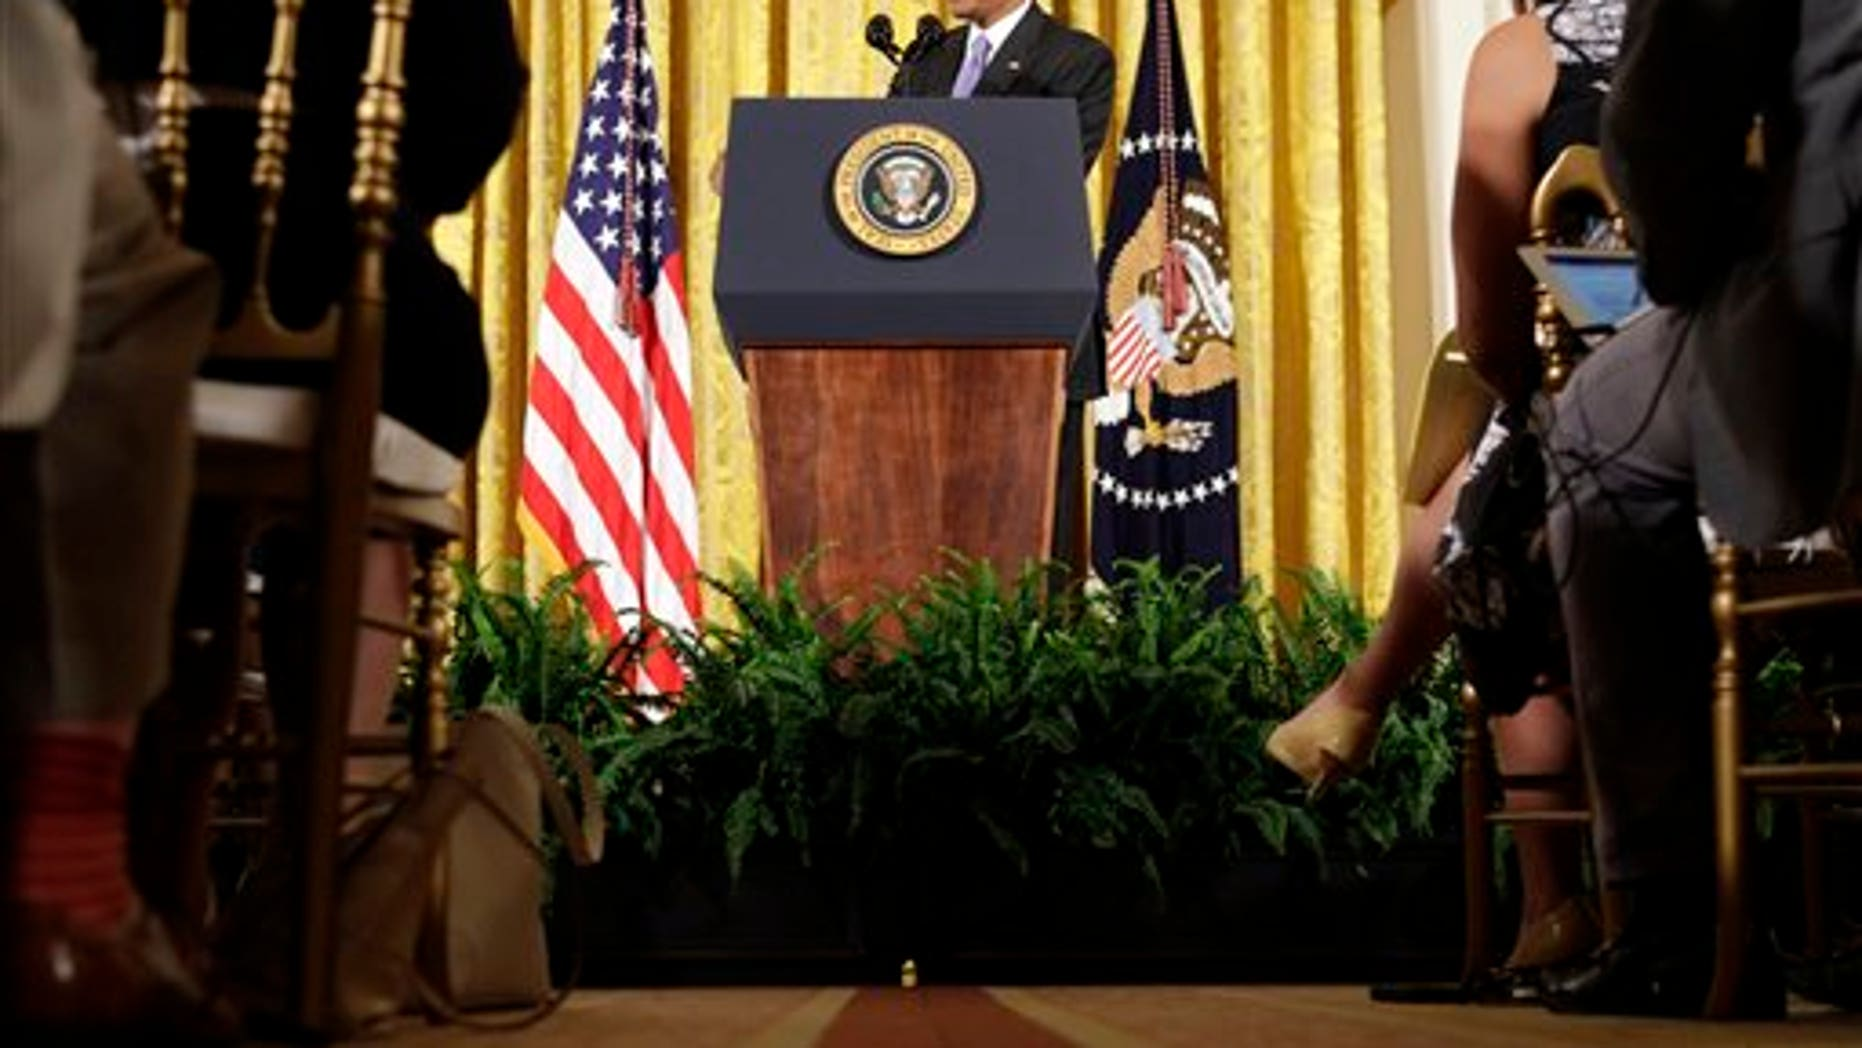 July 15, 2015: President Obama answers questions about the Iran nuclear deal during a news conference in the East Room of the White House in Washington. (AP Photo/Pablo Martinez Monsivais)